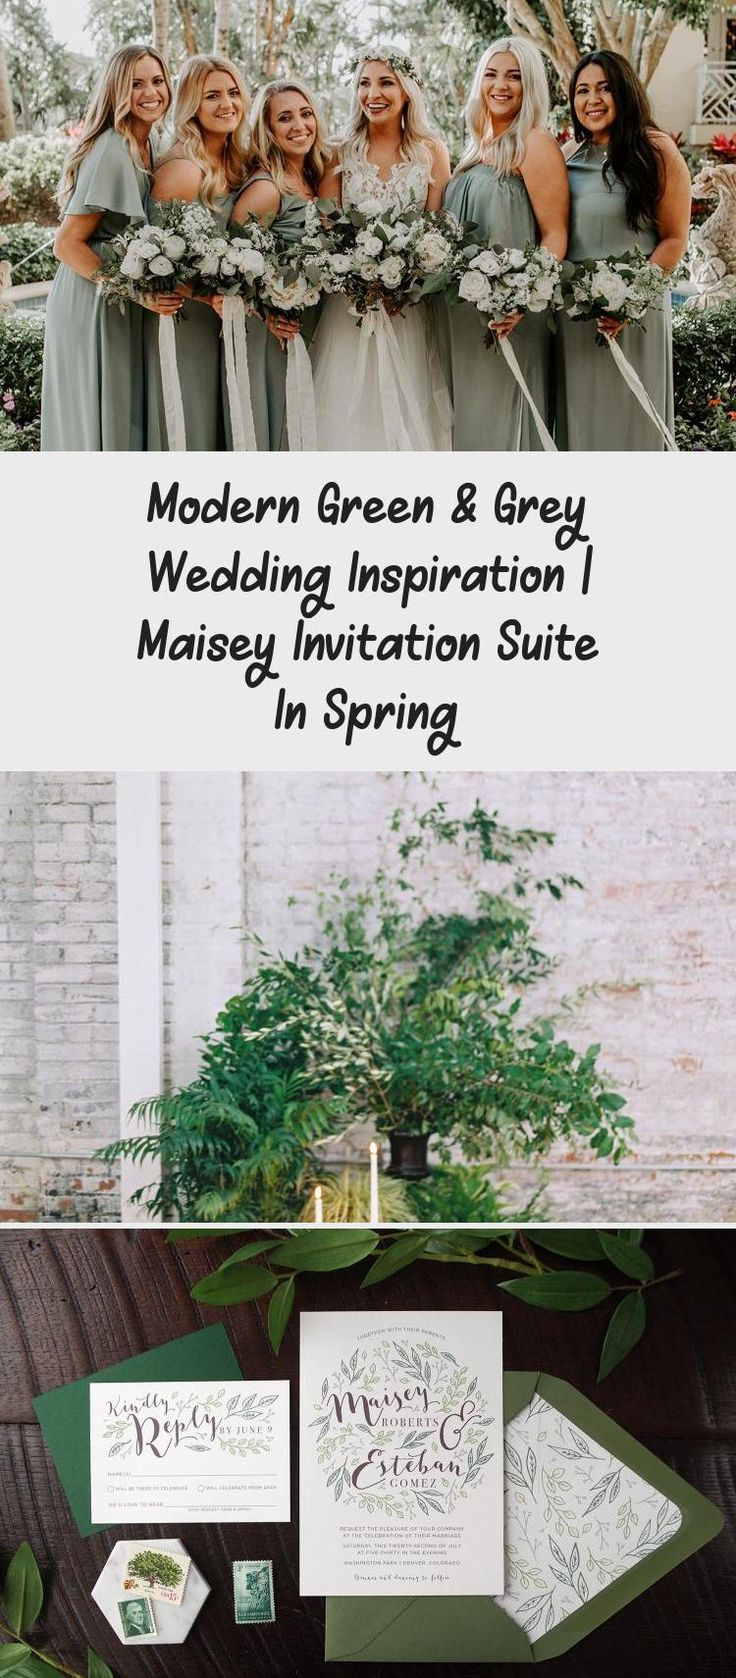 Botanical illustration Green & Grey Wedding inspiration perfect for a modern garden wedding or an urban wedding dripping with greenery. Palette of greens - emerald and sage. Earthy and organic with clean, modern touches. Bridesmaid dresses #BridesmaidDressesWithSleeves #YellowBridesmaidDresses #WeddingBridesmaidDresses #BridesmaidDressesSpring #BridesmaidDressesMauve